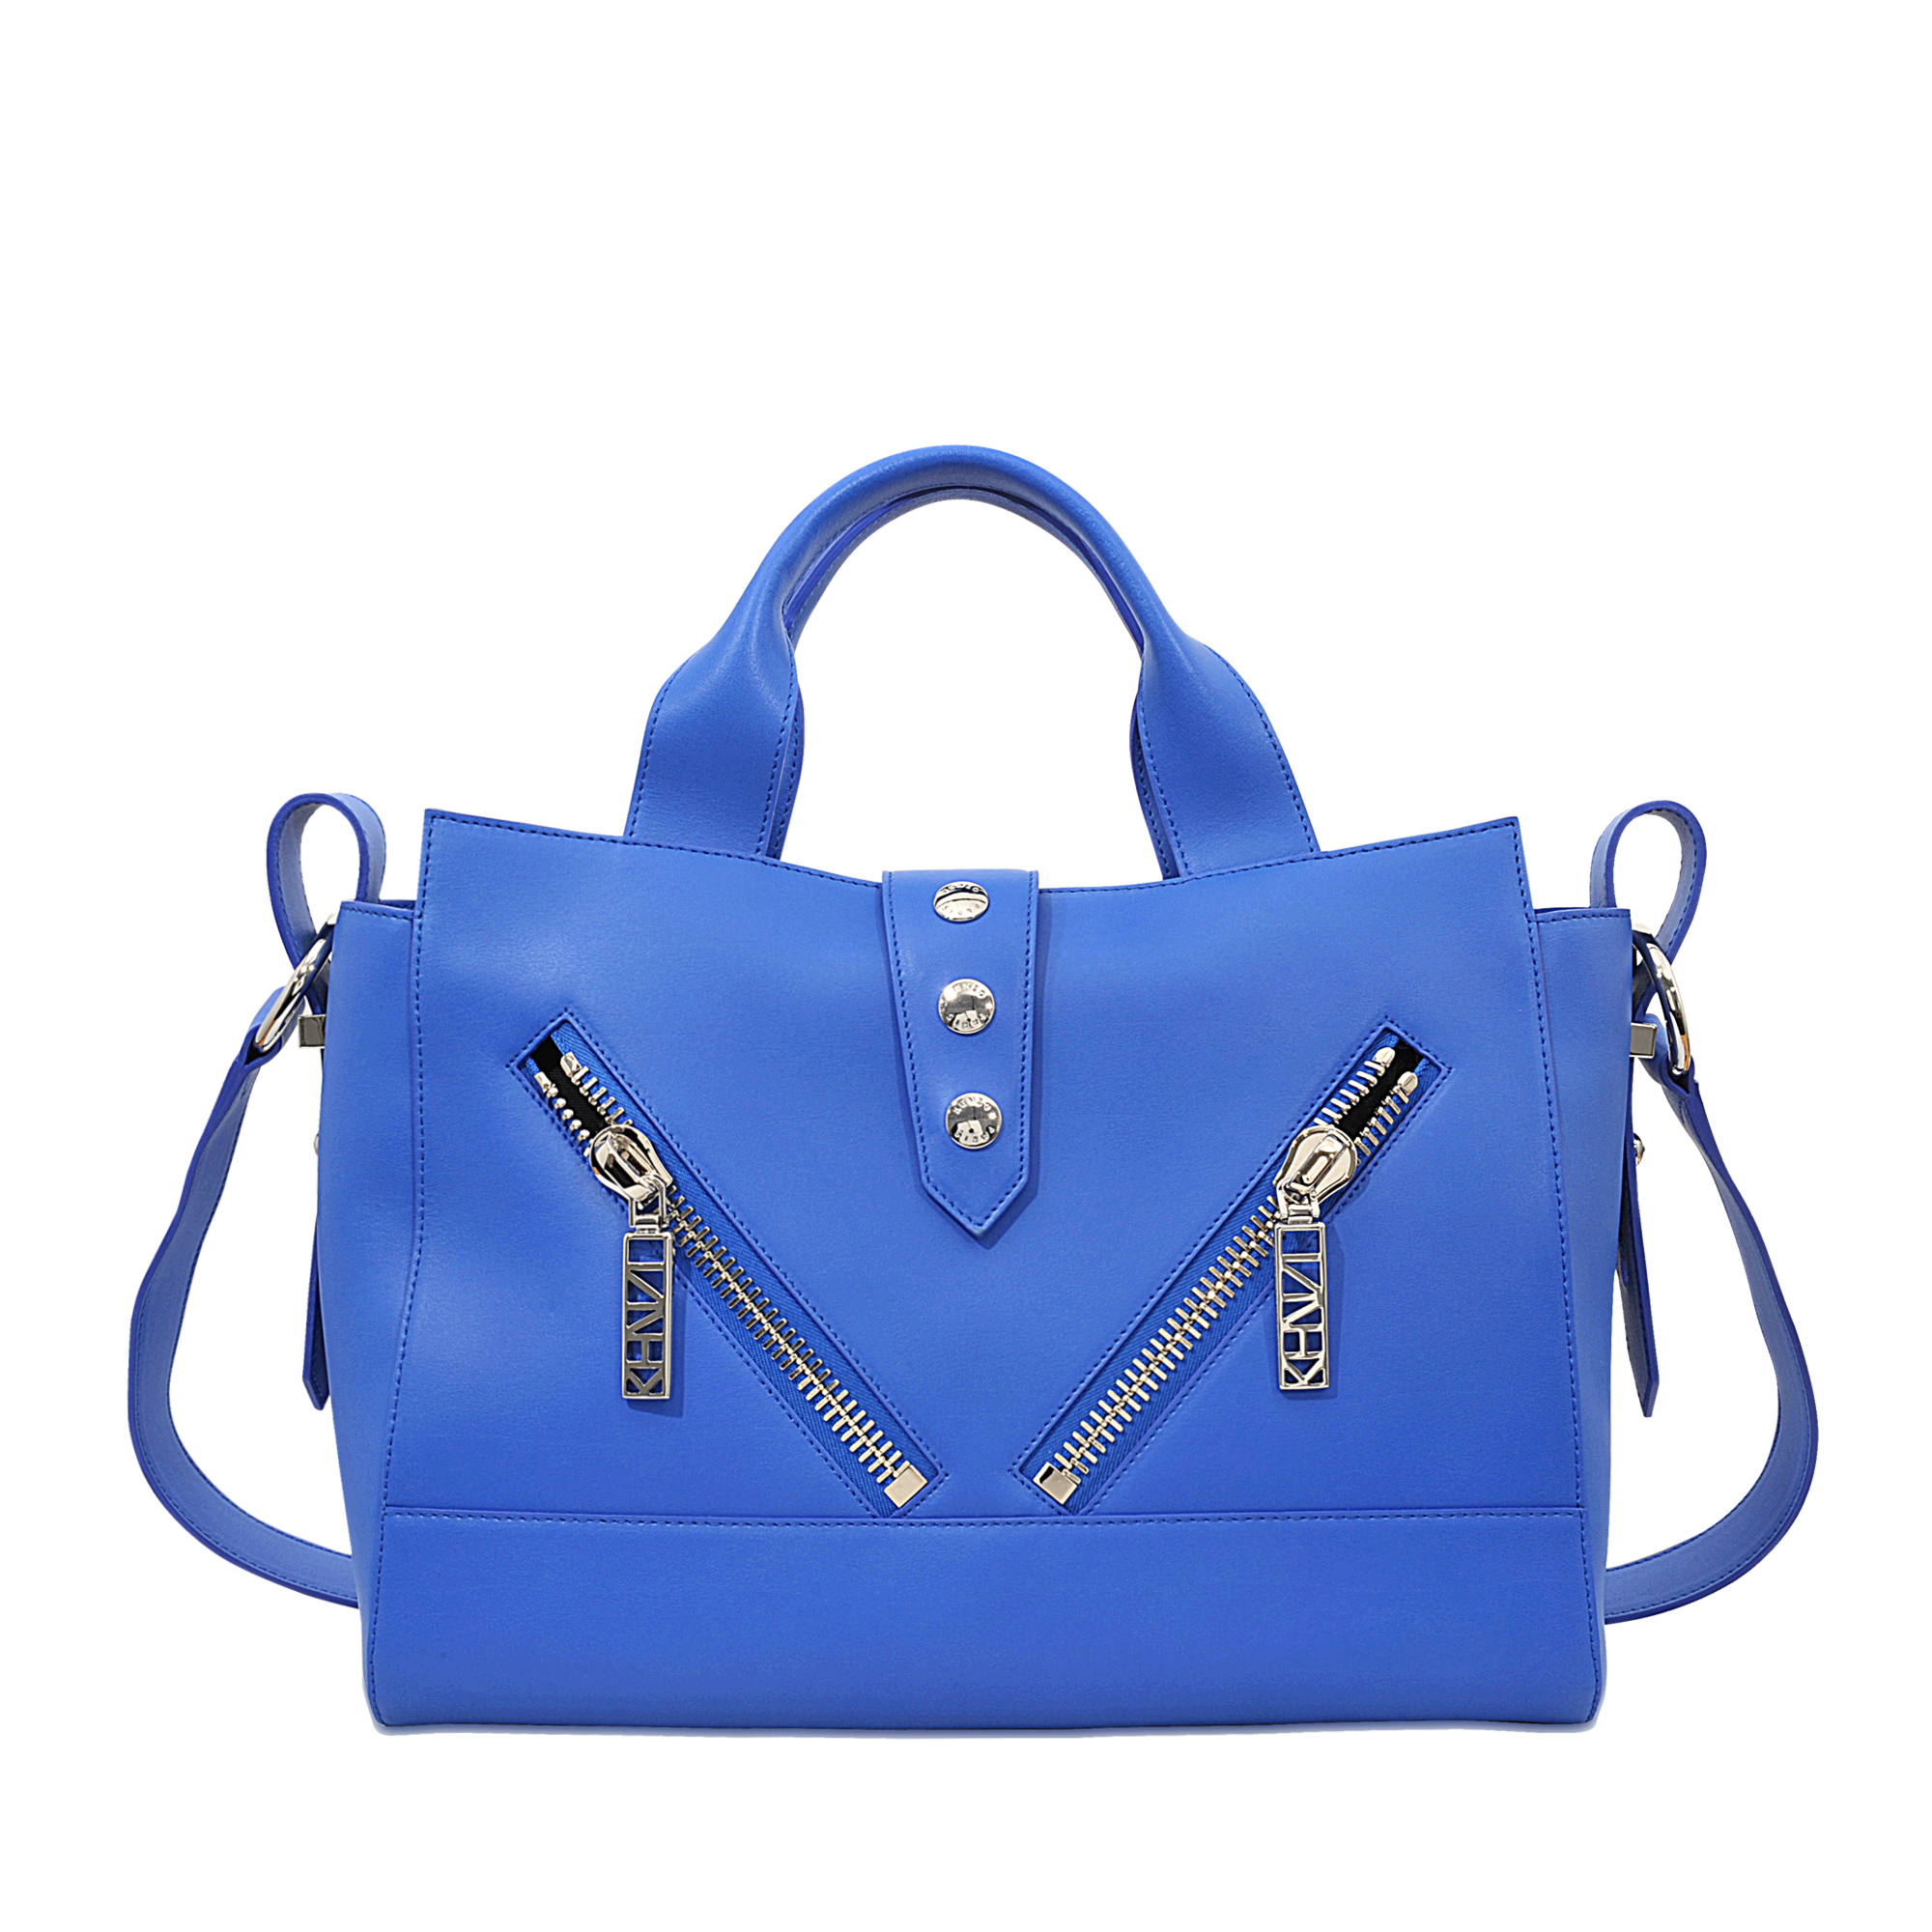 aa2c58ee53 KENZO Kalifornia Medium Tote Bag in Blue - Lyst